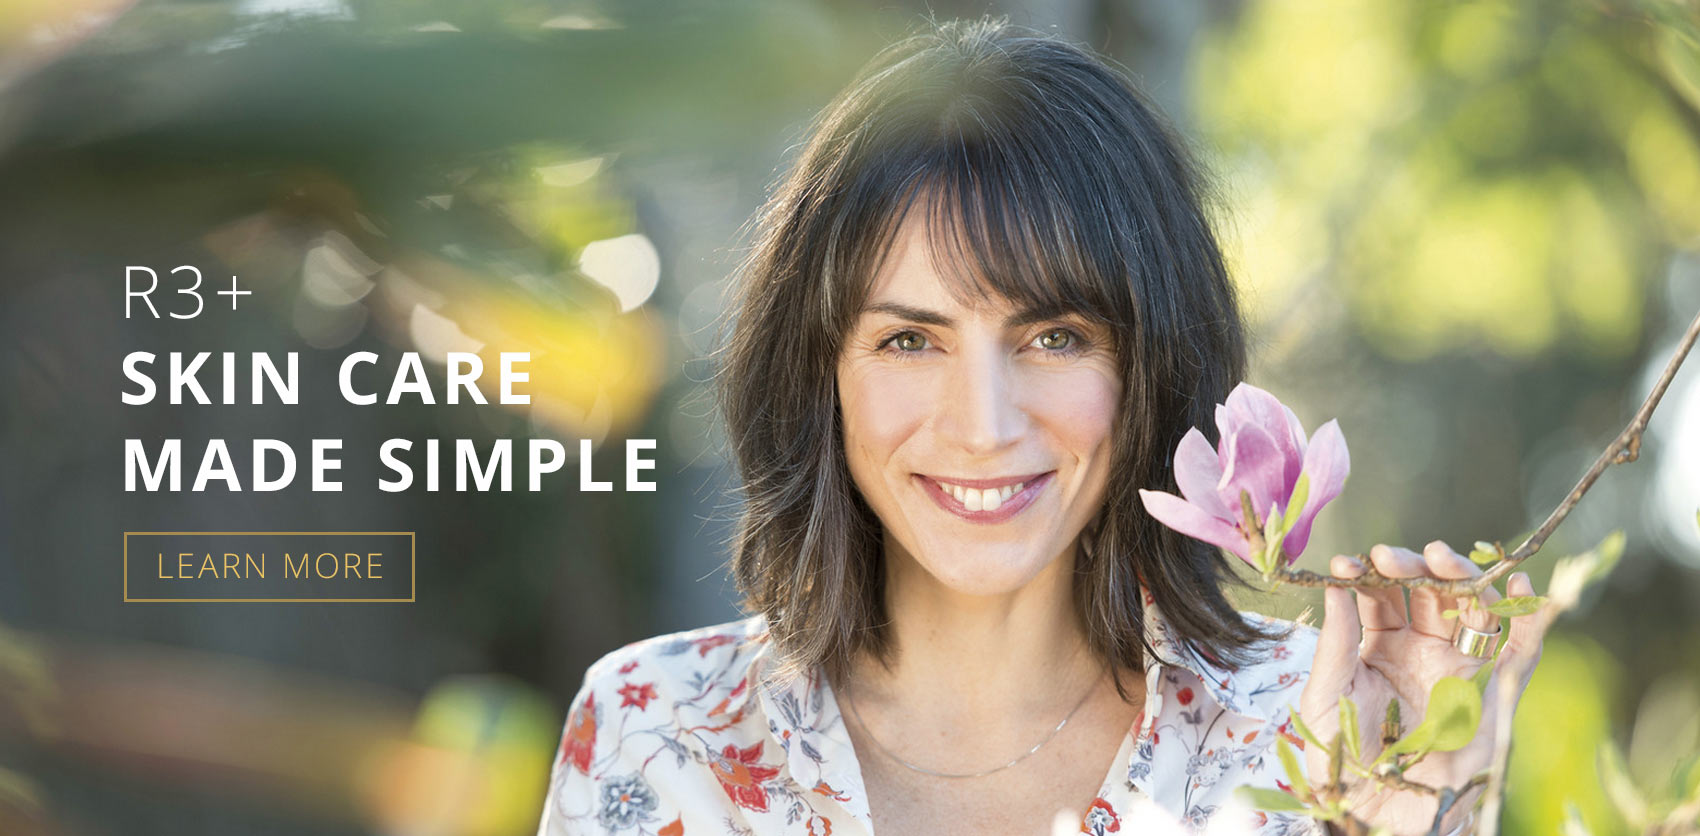 R3 Plus Explained - Skin Care Made Simple